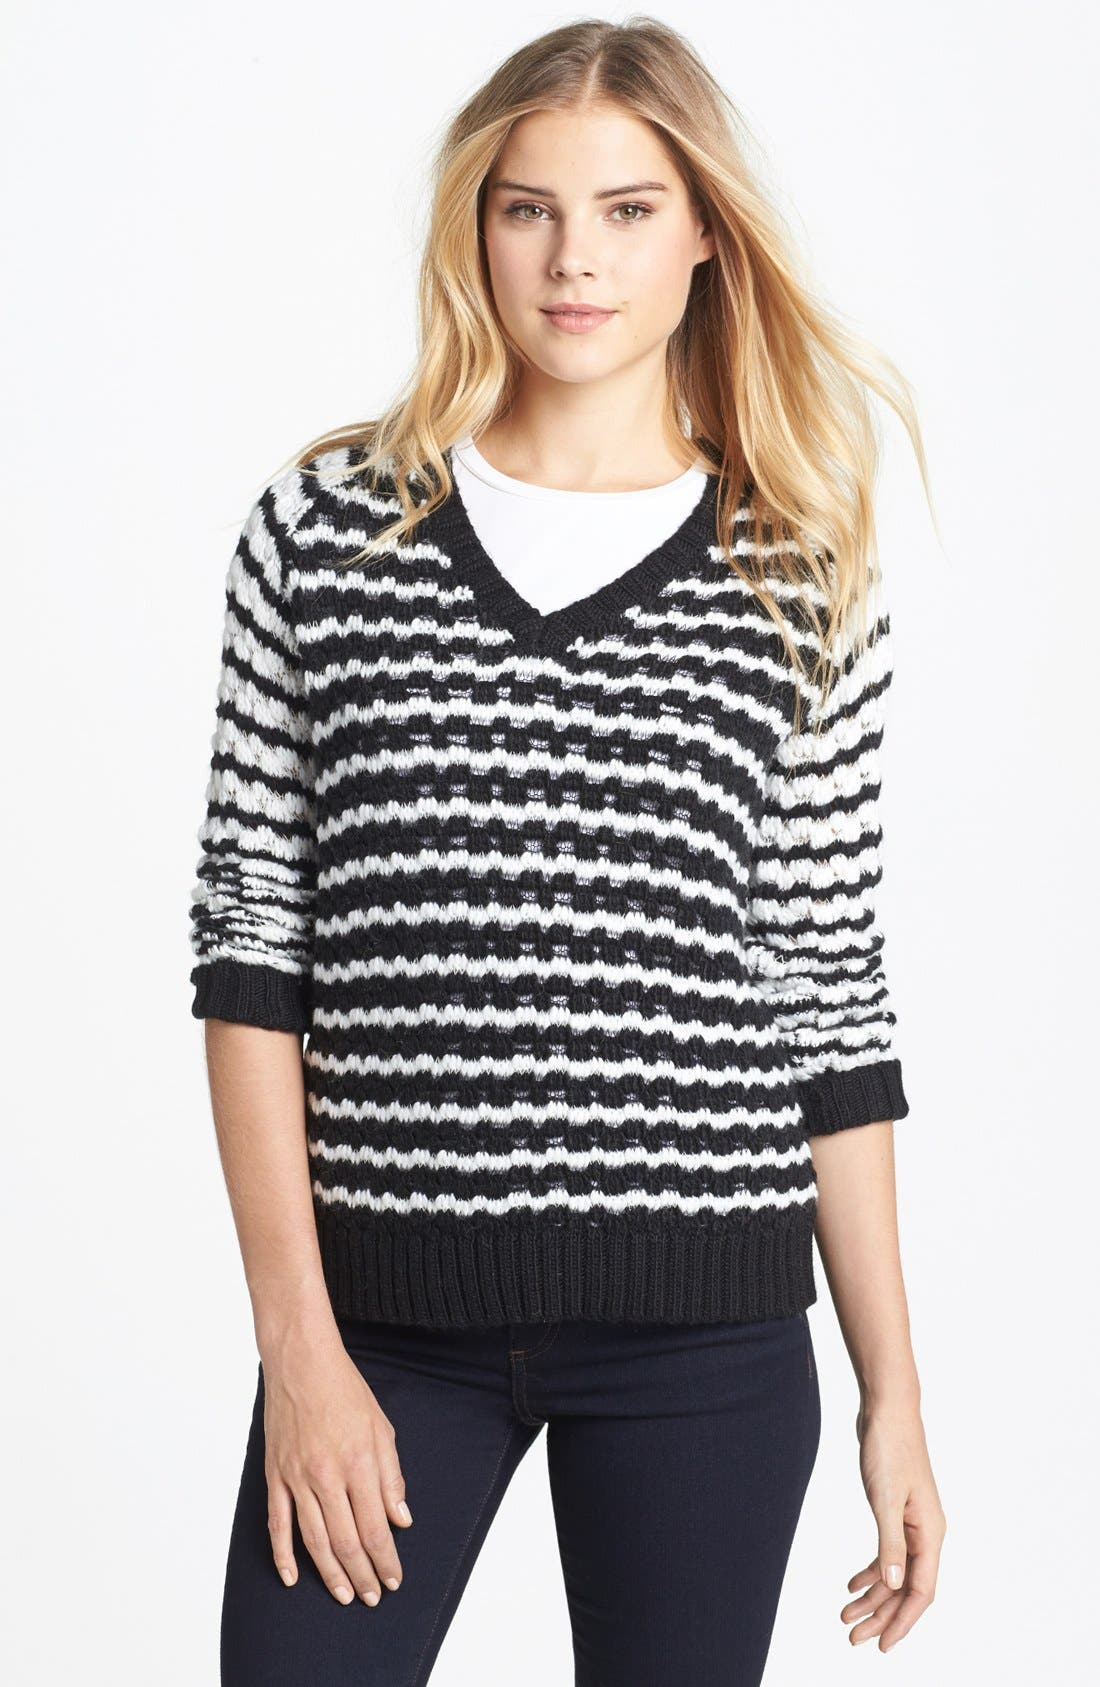 Alternate Image 1 Selected - Two by Vince Camuto Bubble Stitch Stripe V-Neck Sweater